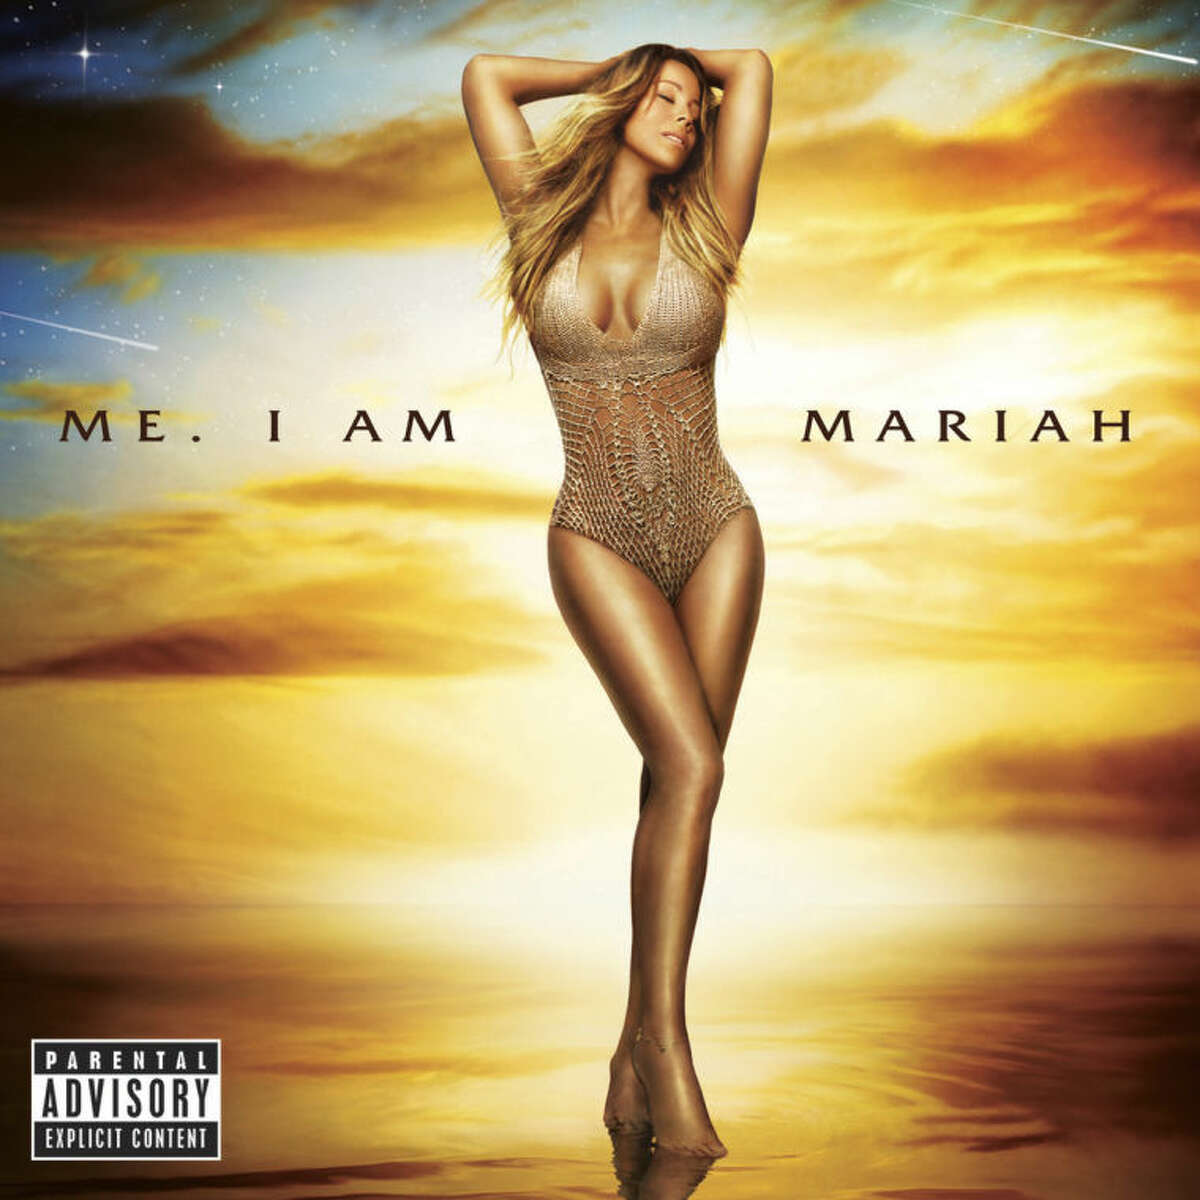 Ap photo This CD cover image released by Def Jam Records shows